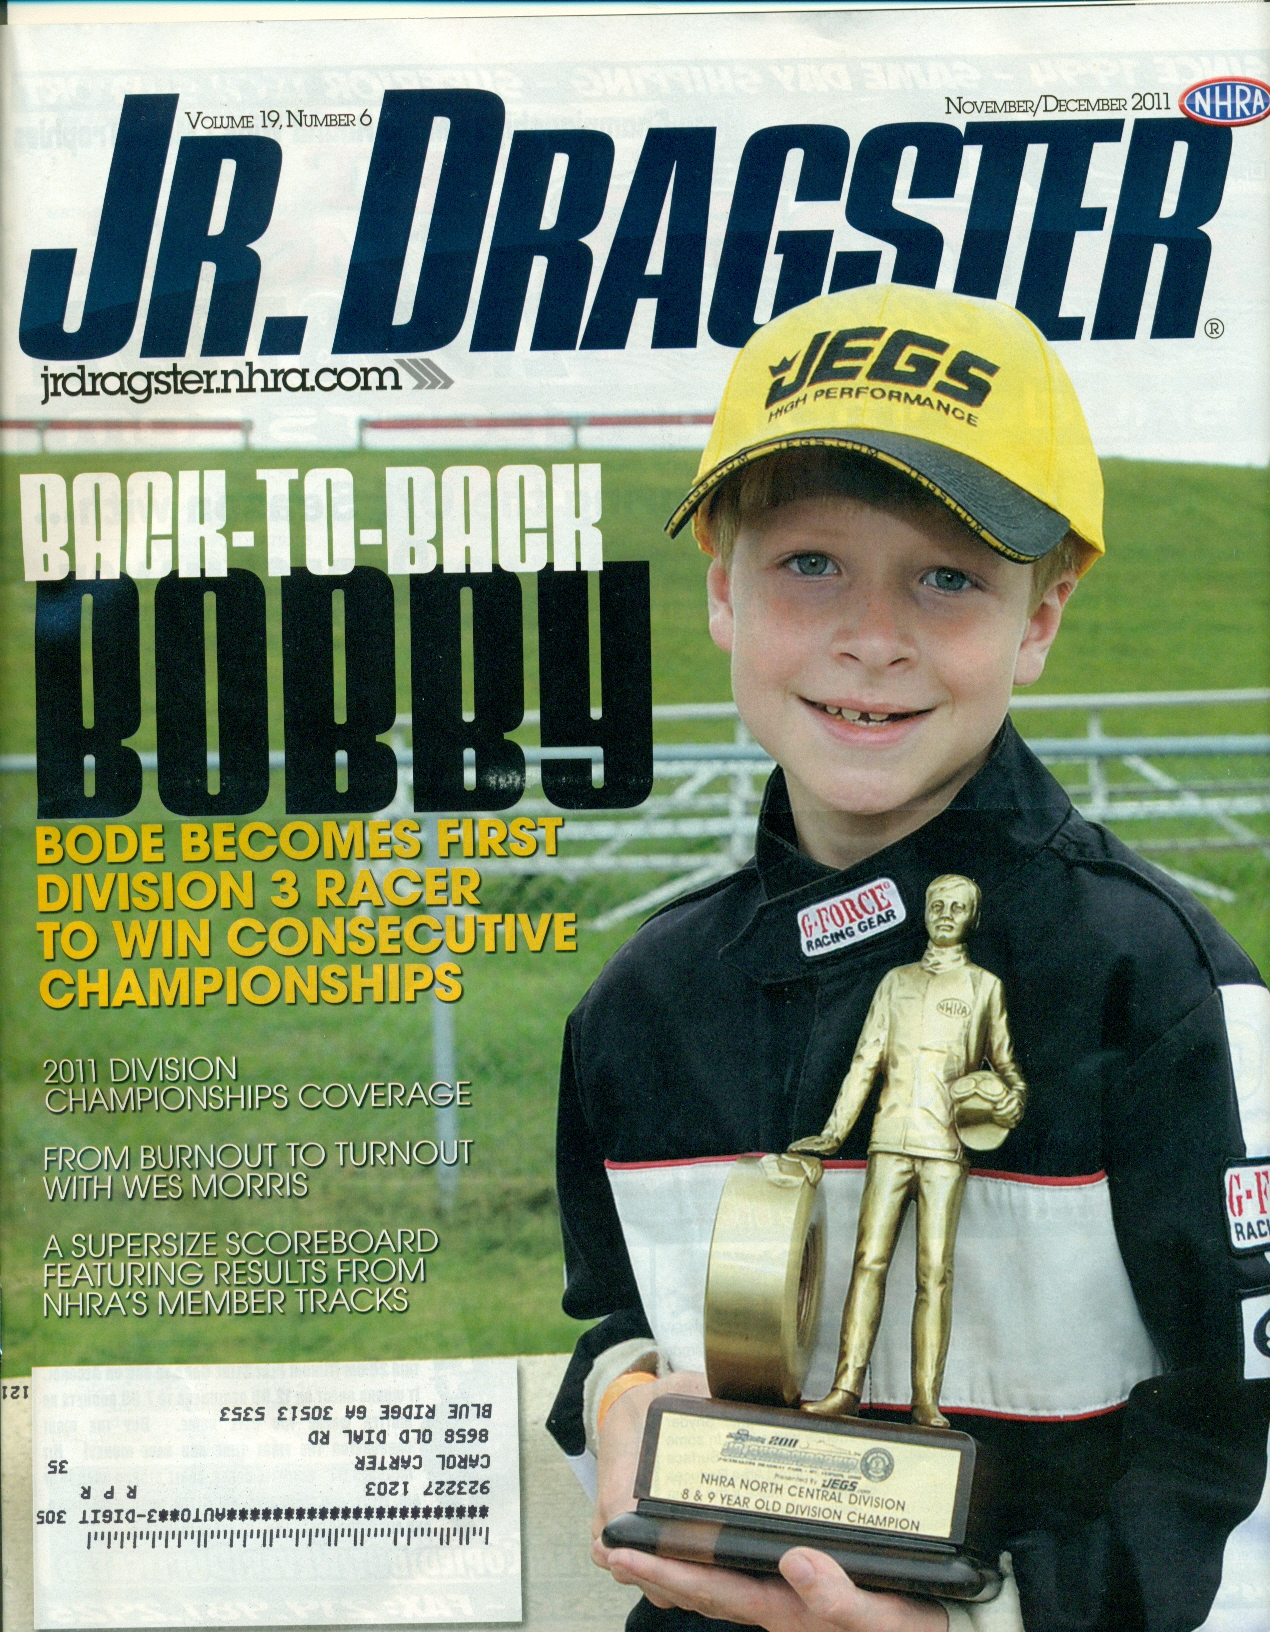 Dragster junior photo - 4